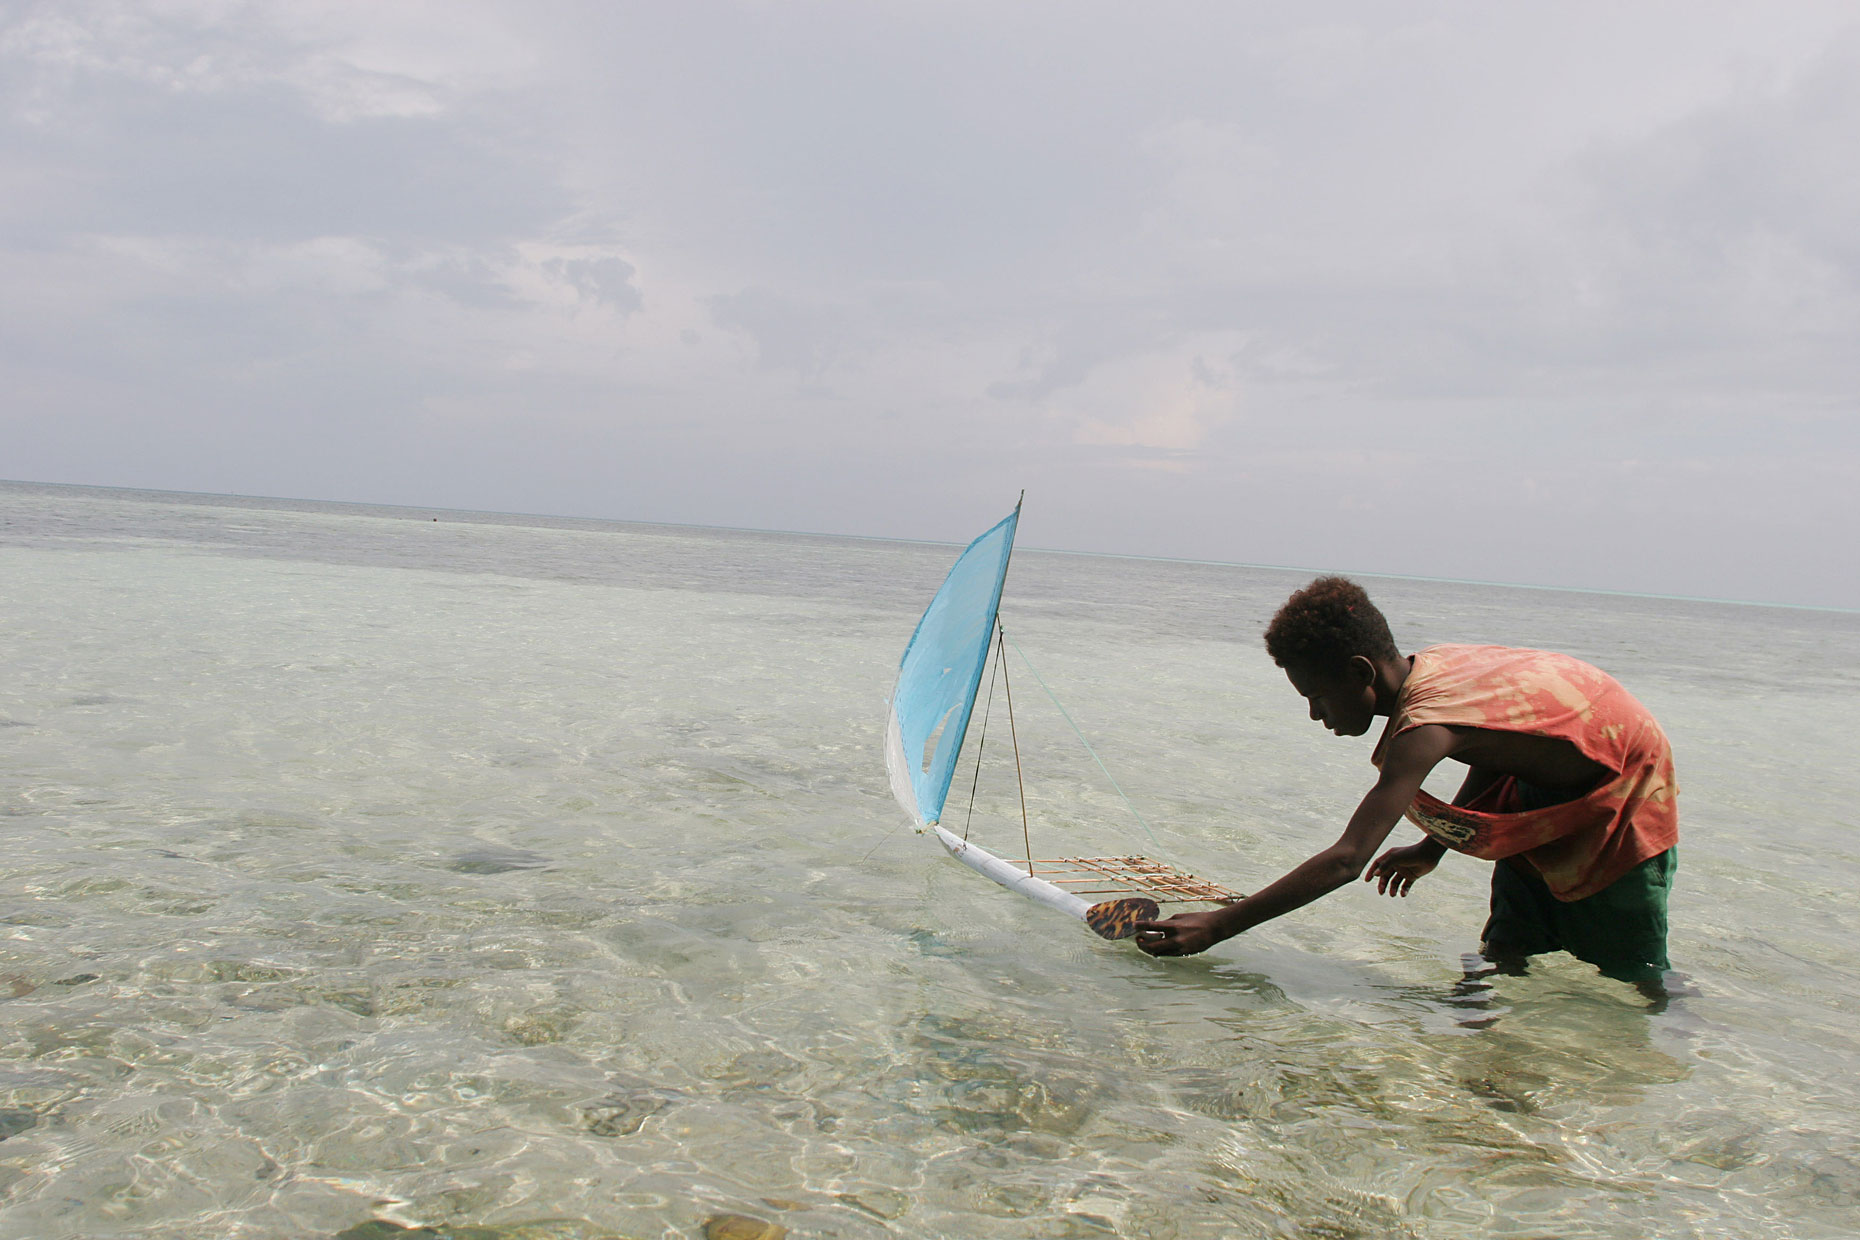 Toy boat in Pacific Atoll, by Scotland Greenpeace photographer